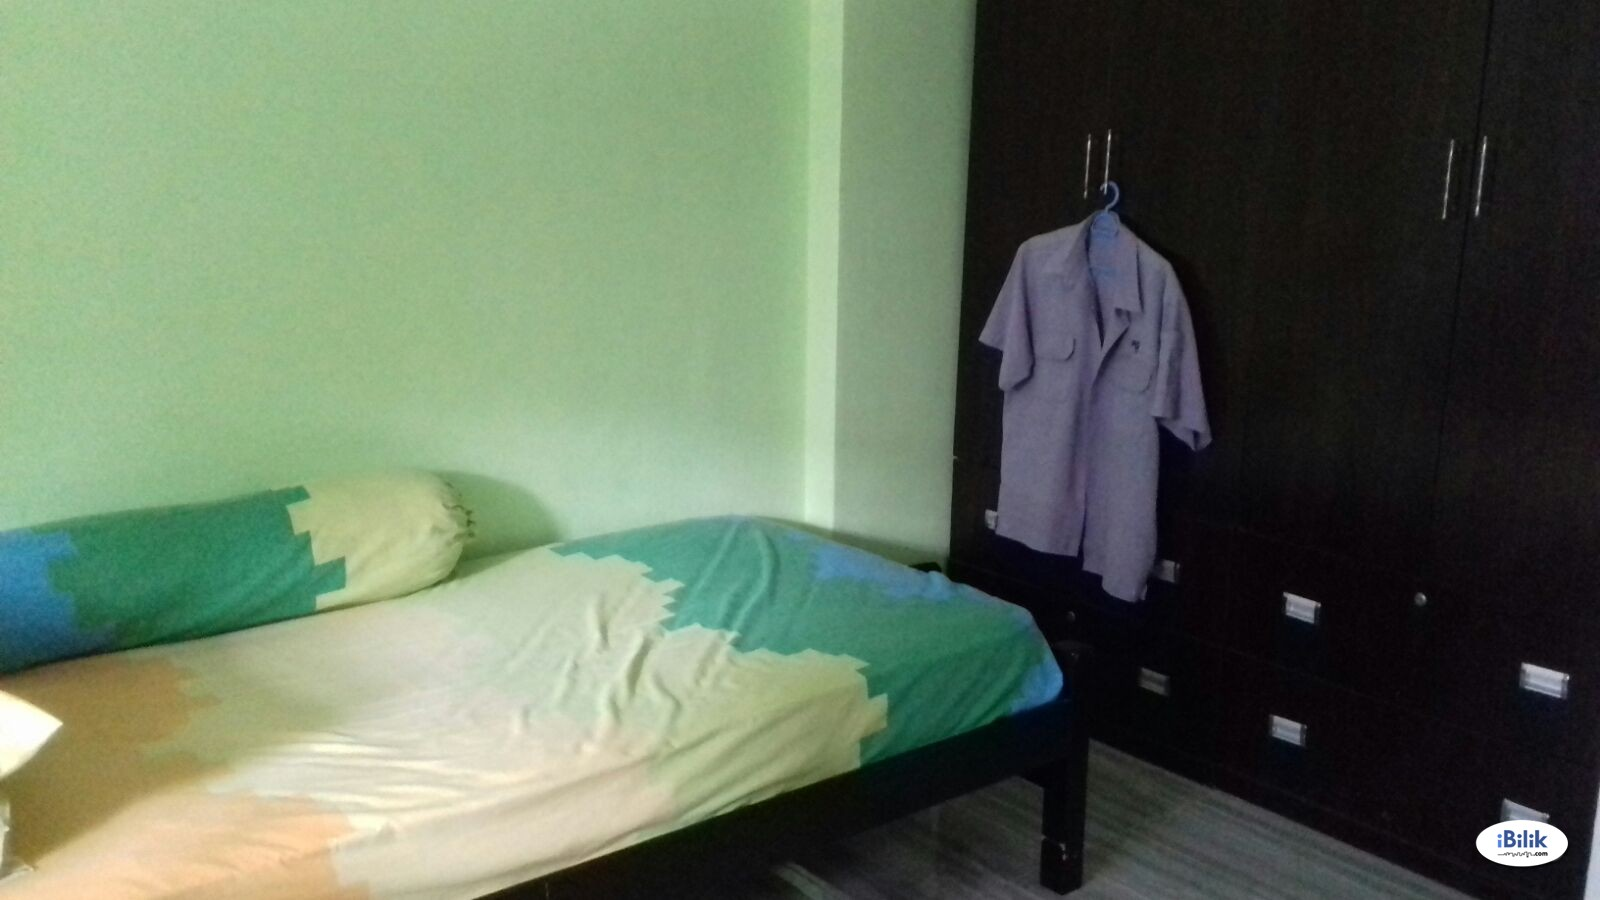 Common room at 263 boon lay drive for rent! Aircon wifi!